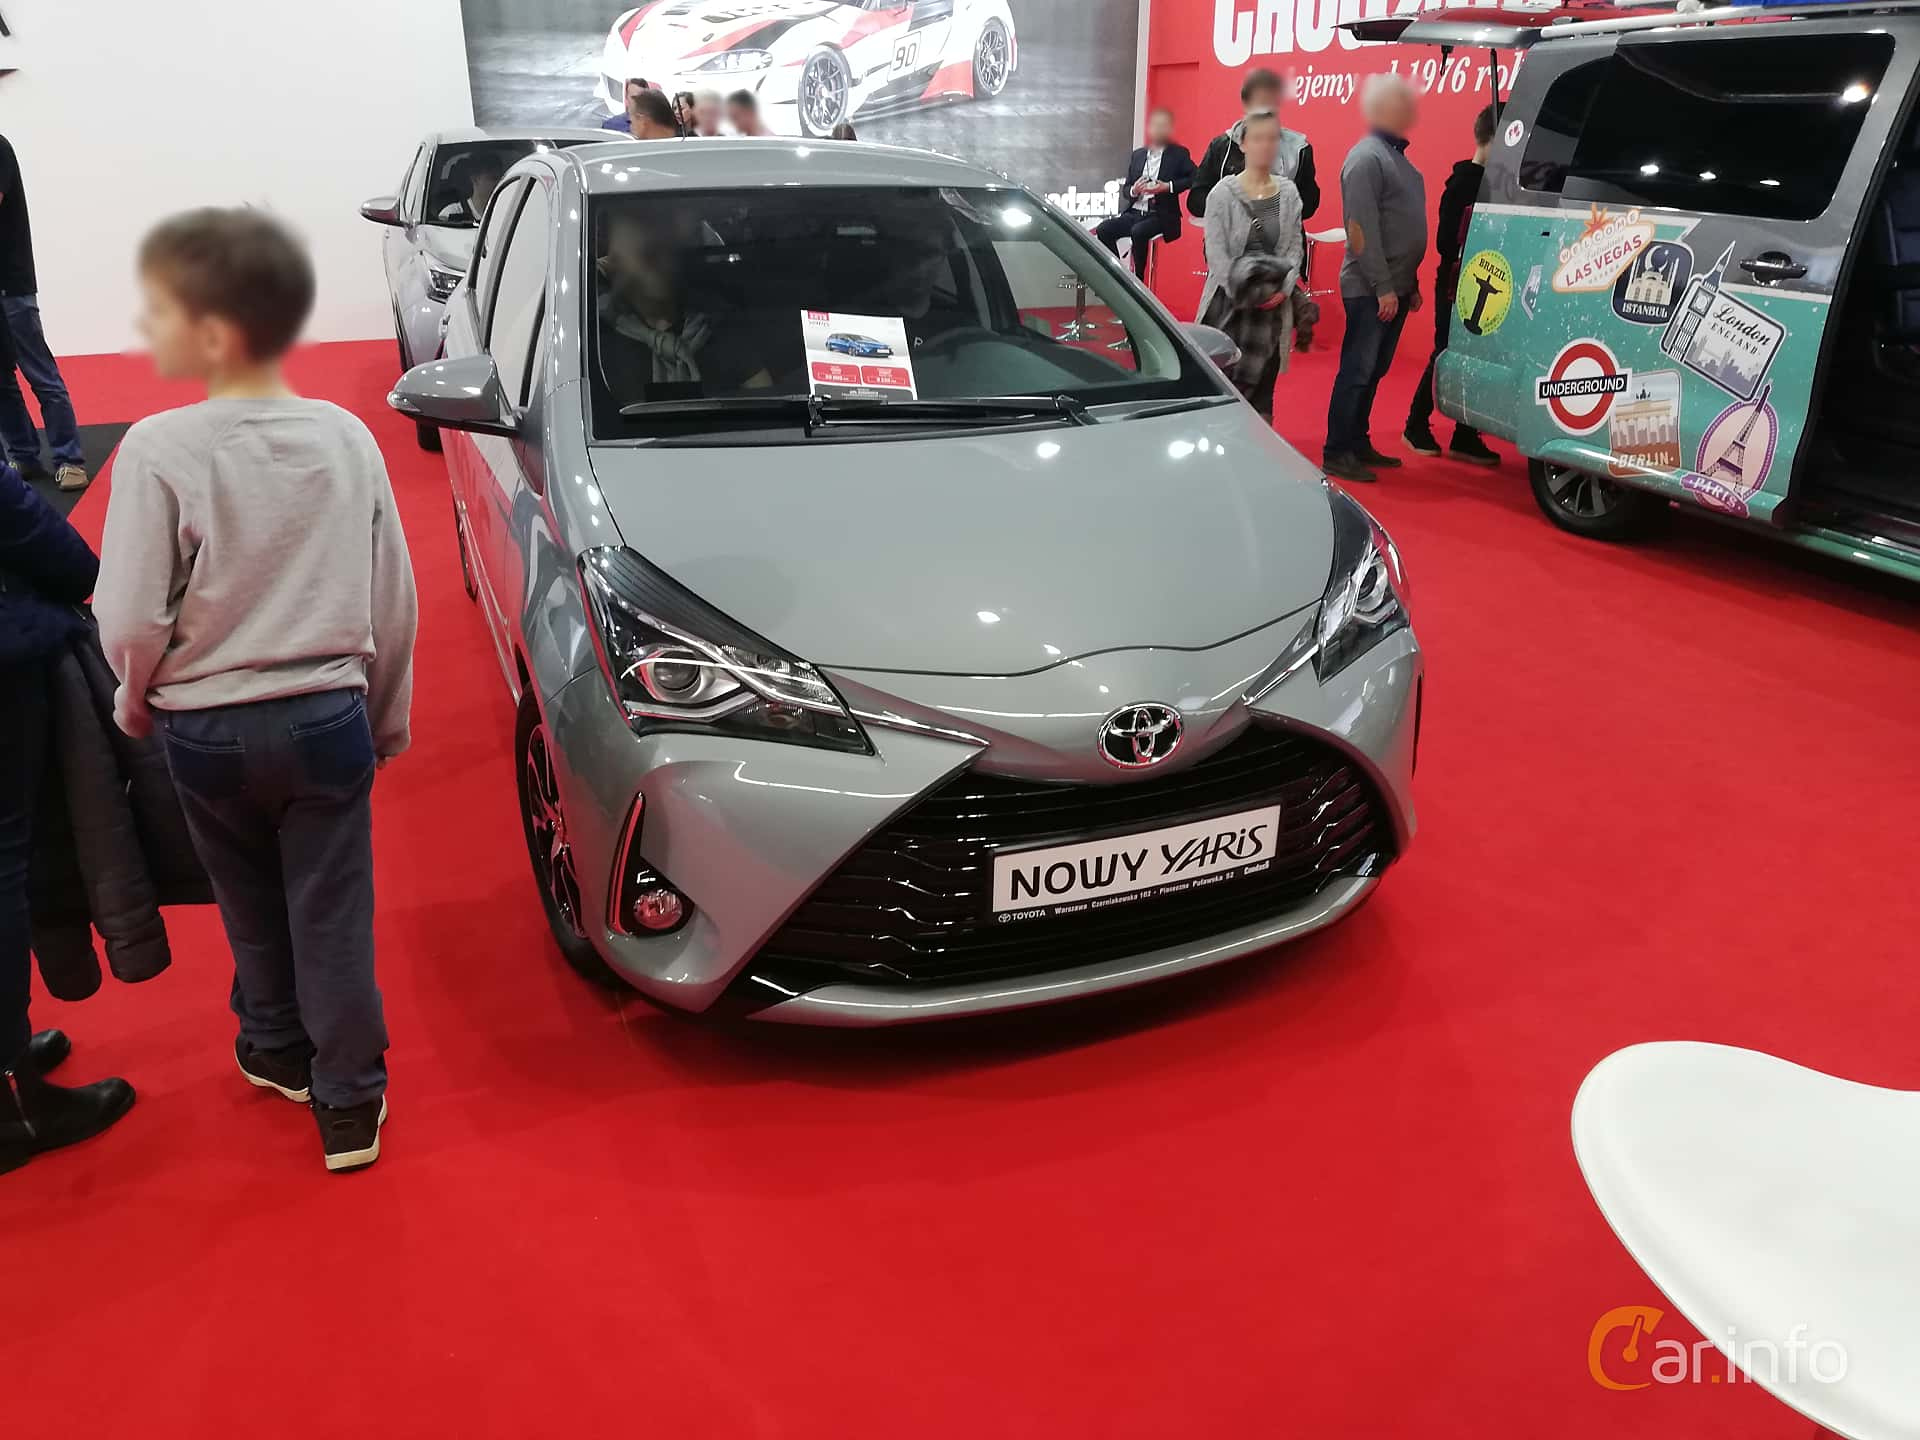 Toyota Yaris 5-door 1.0 VVT-i Manual, 69hp, 2018 at Warsawa Motorshow 2018